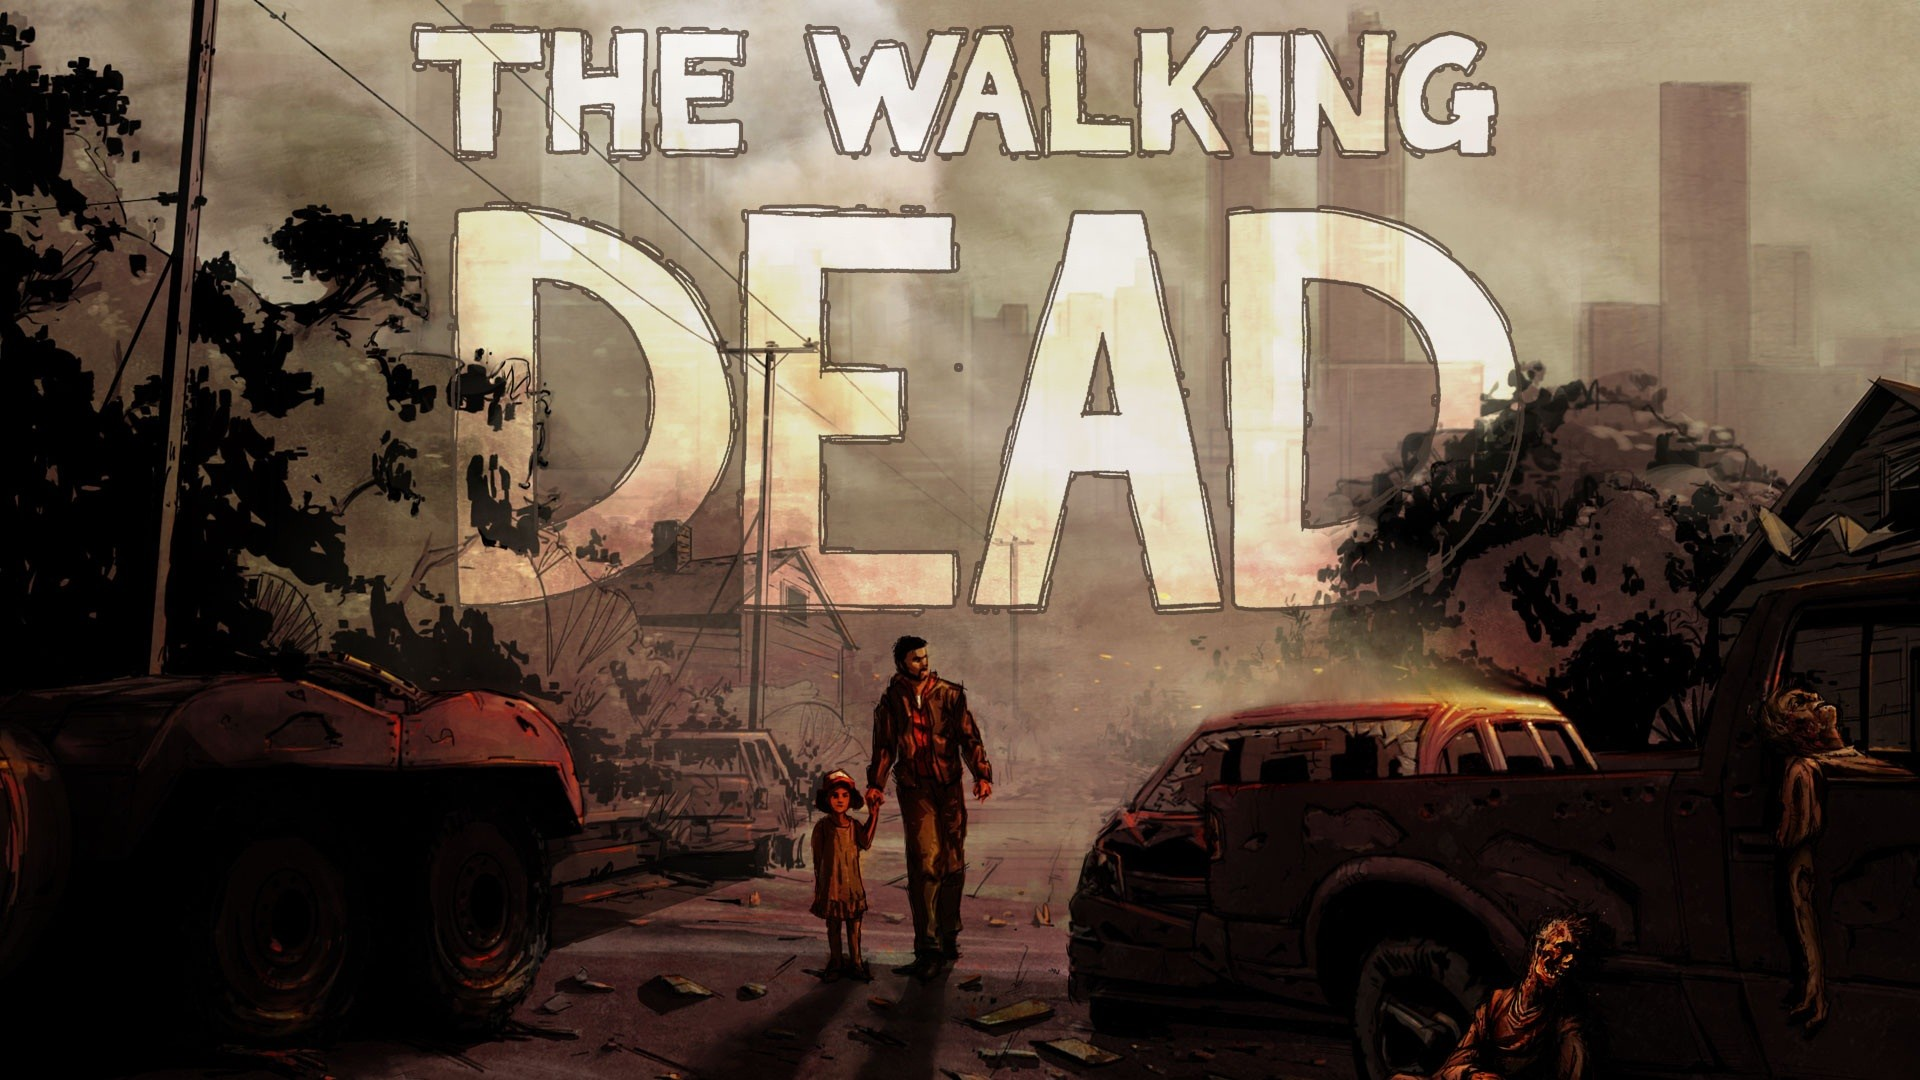 undefined The Walking Dead Game Wallpapers (29 Wallpapers) | Adorable  Wallpapers